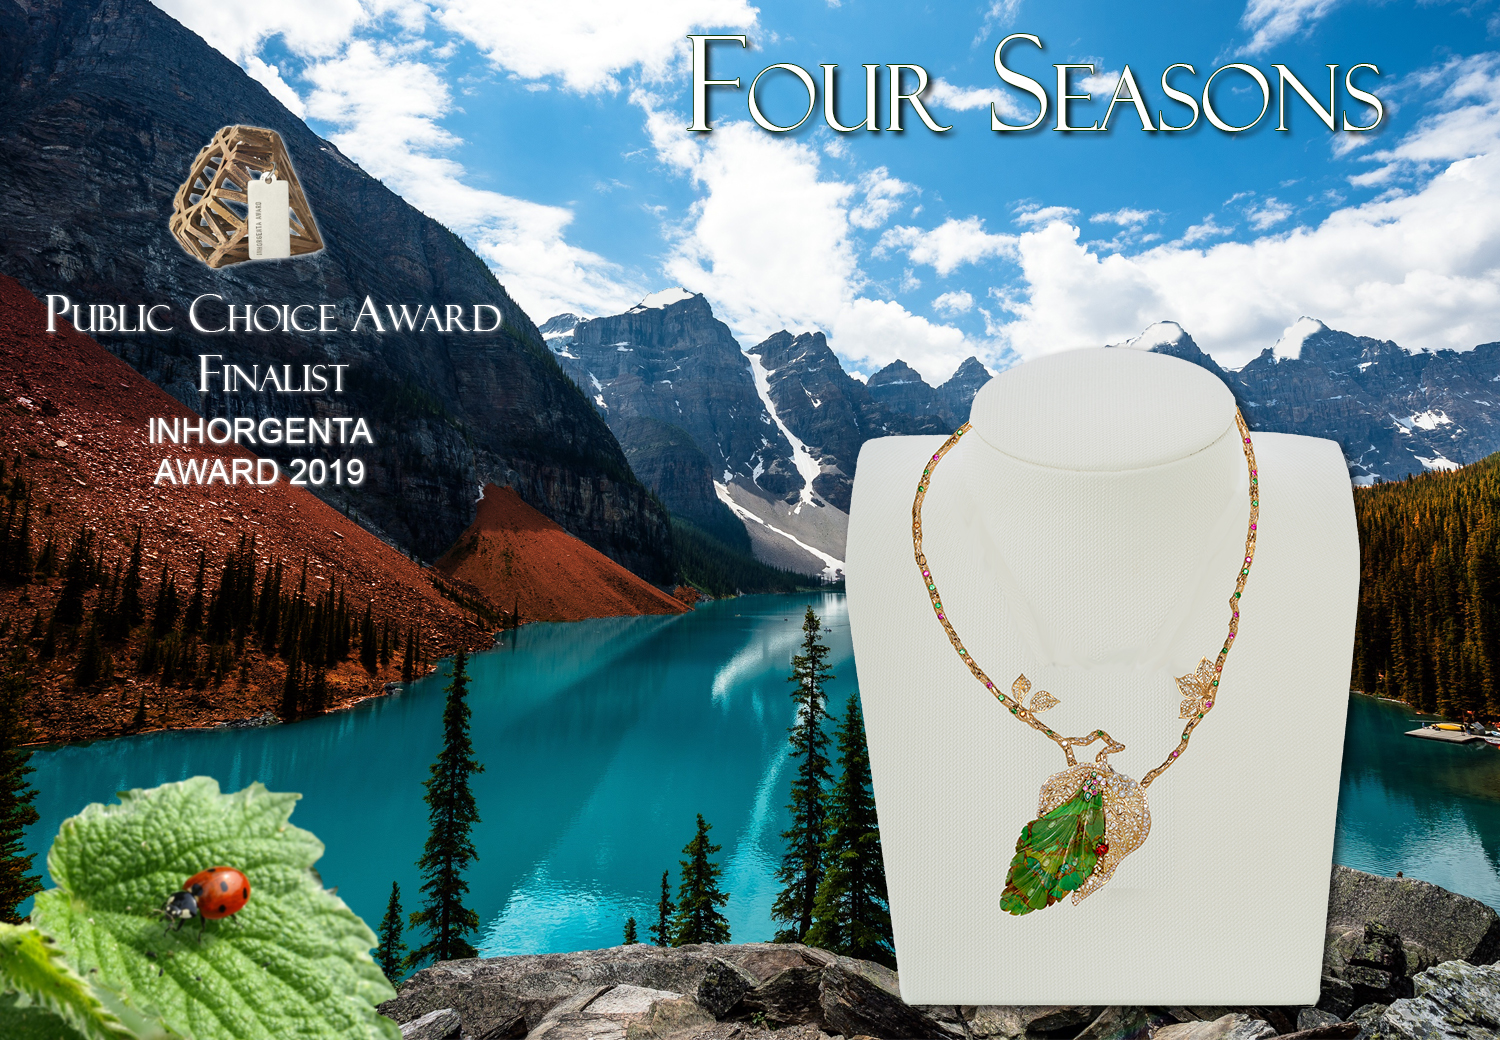 Four-Seasons-Inhorgenta-Award-2019-Finalist-Jaime-Moreno-Art-in-Fine-Jewelry